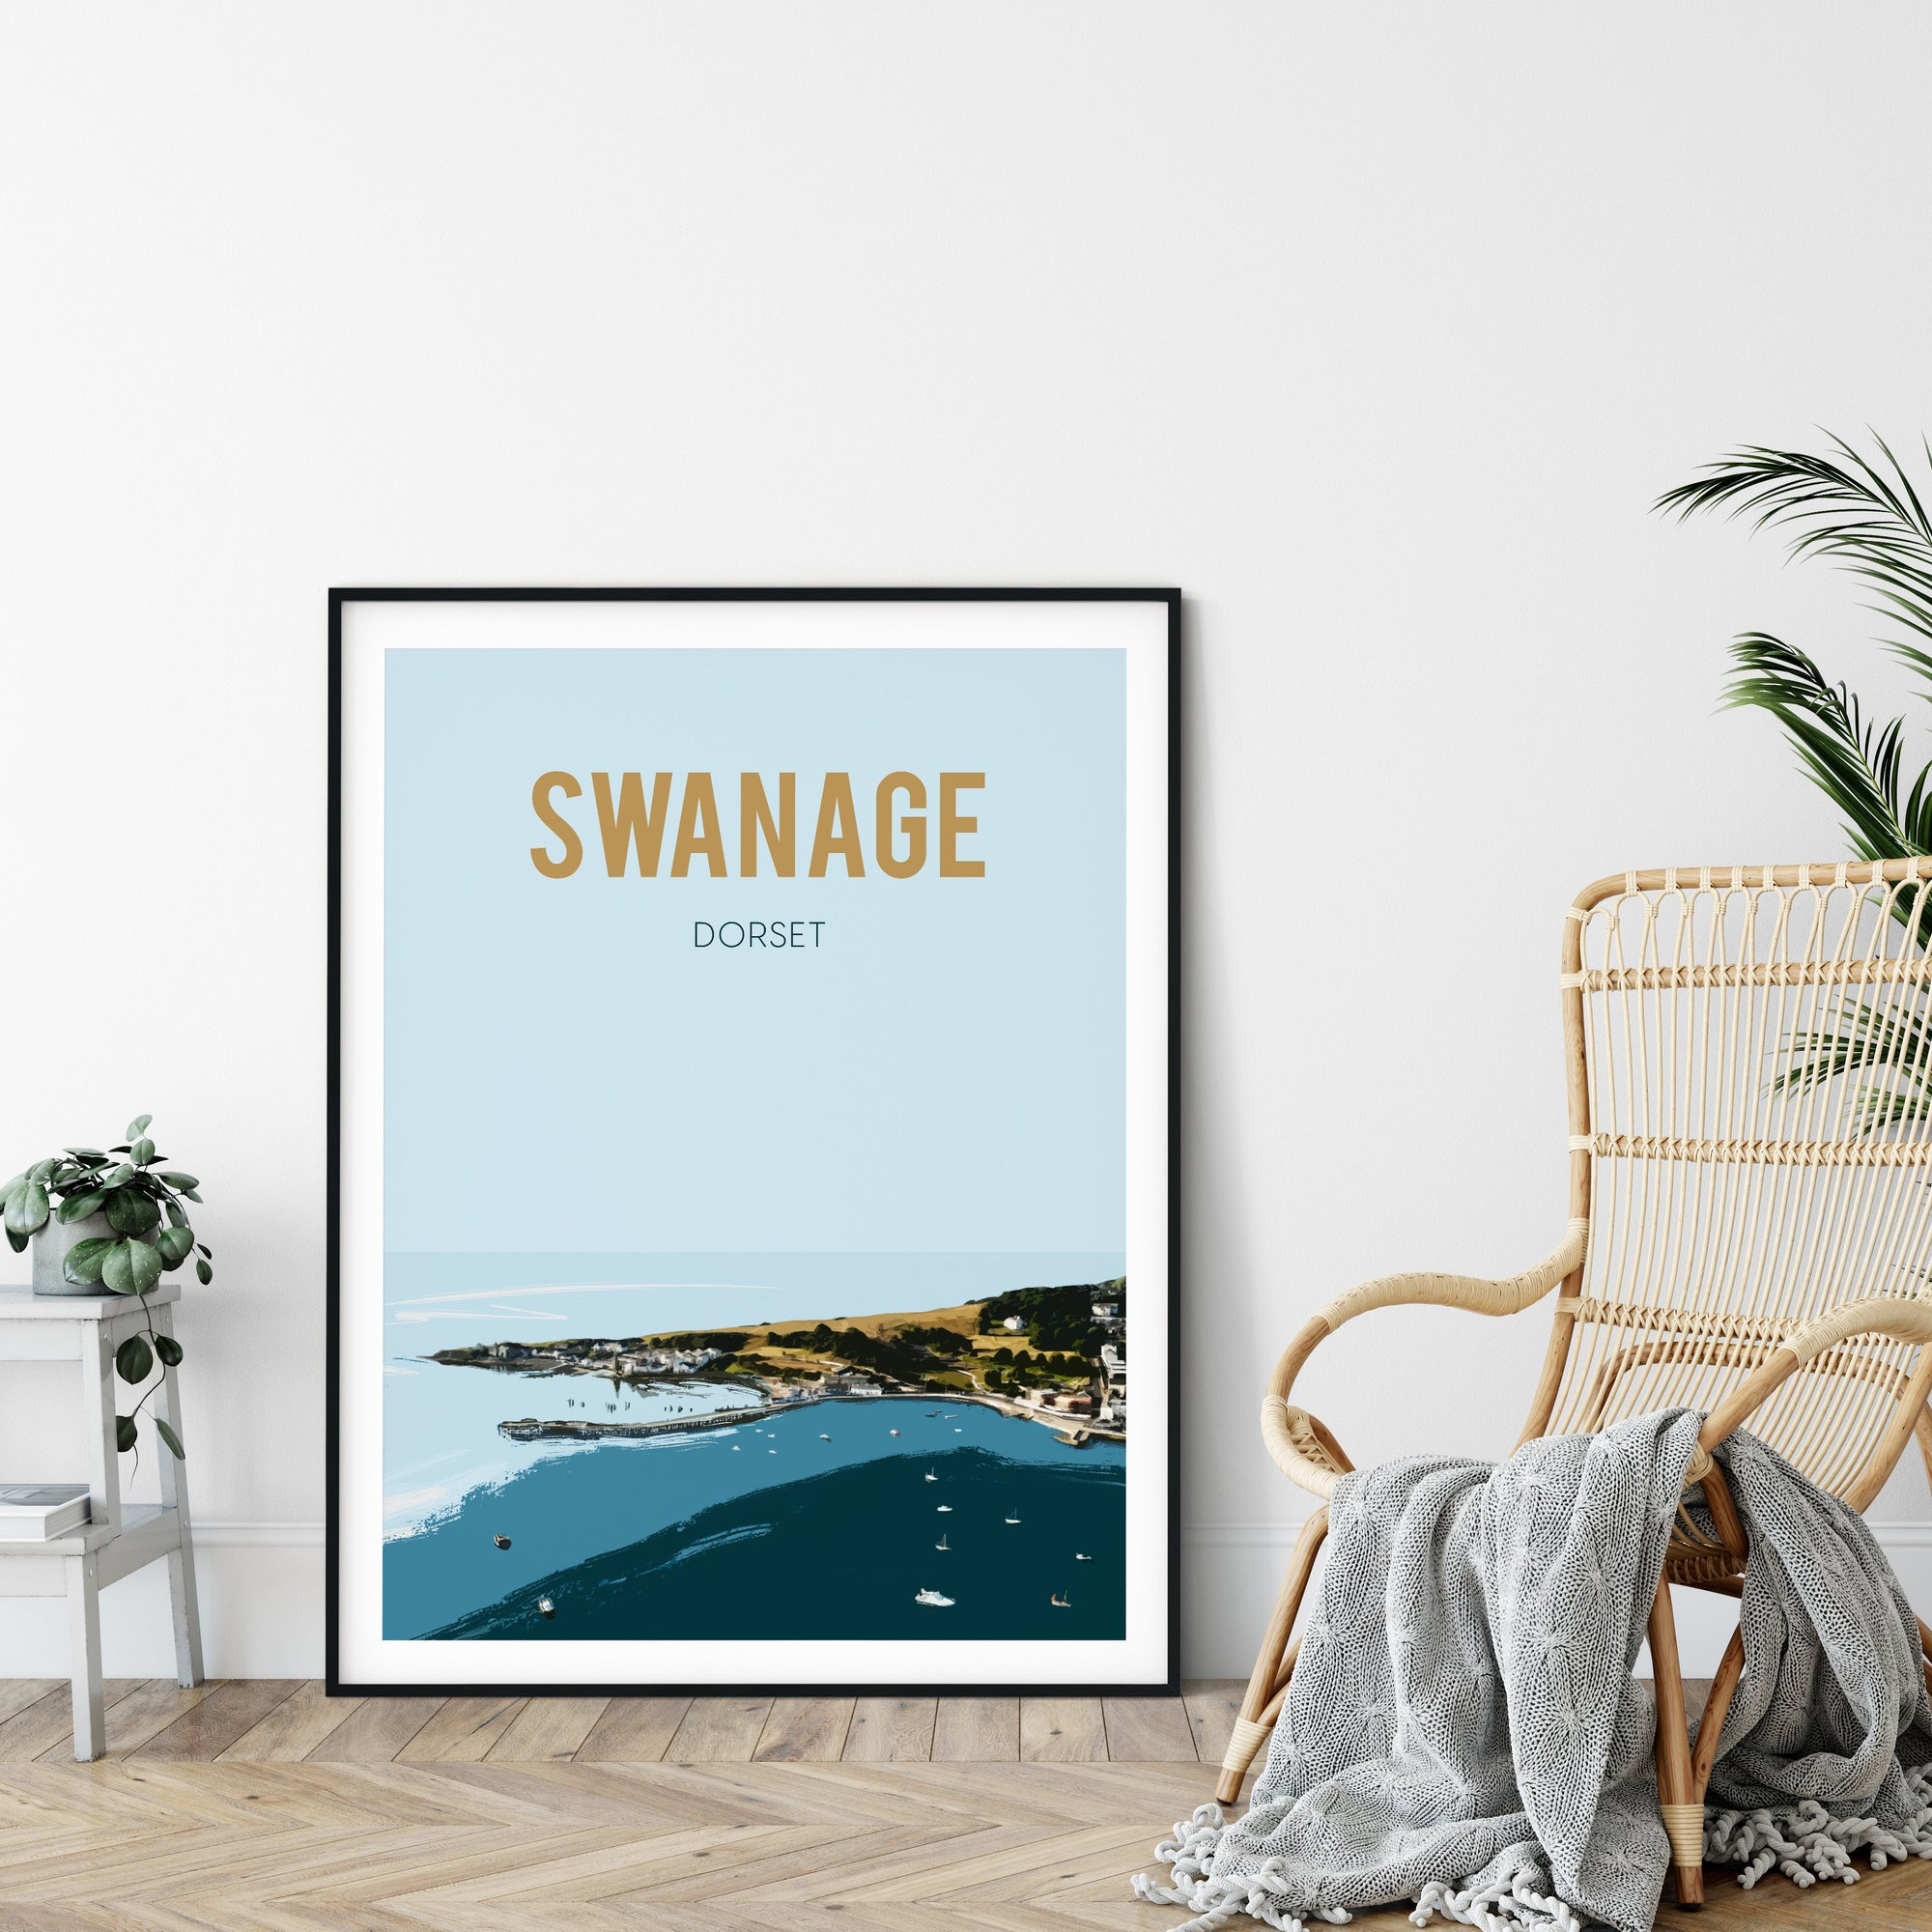 Swanage, Dorset fine art print - UNFRAMED